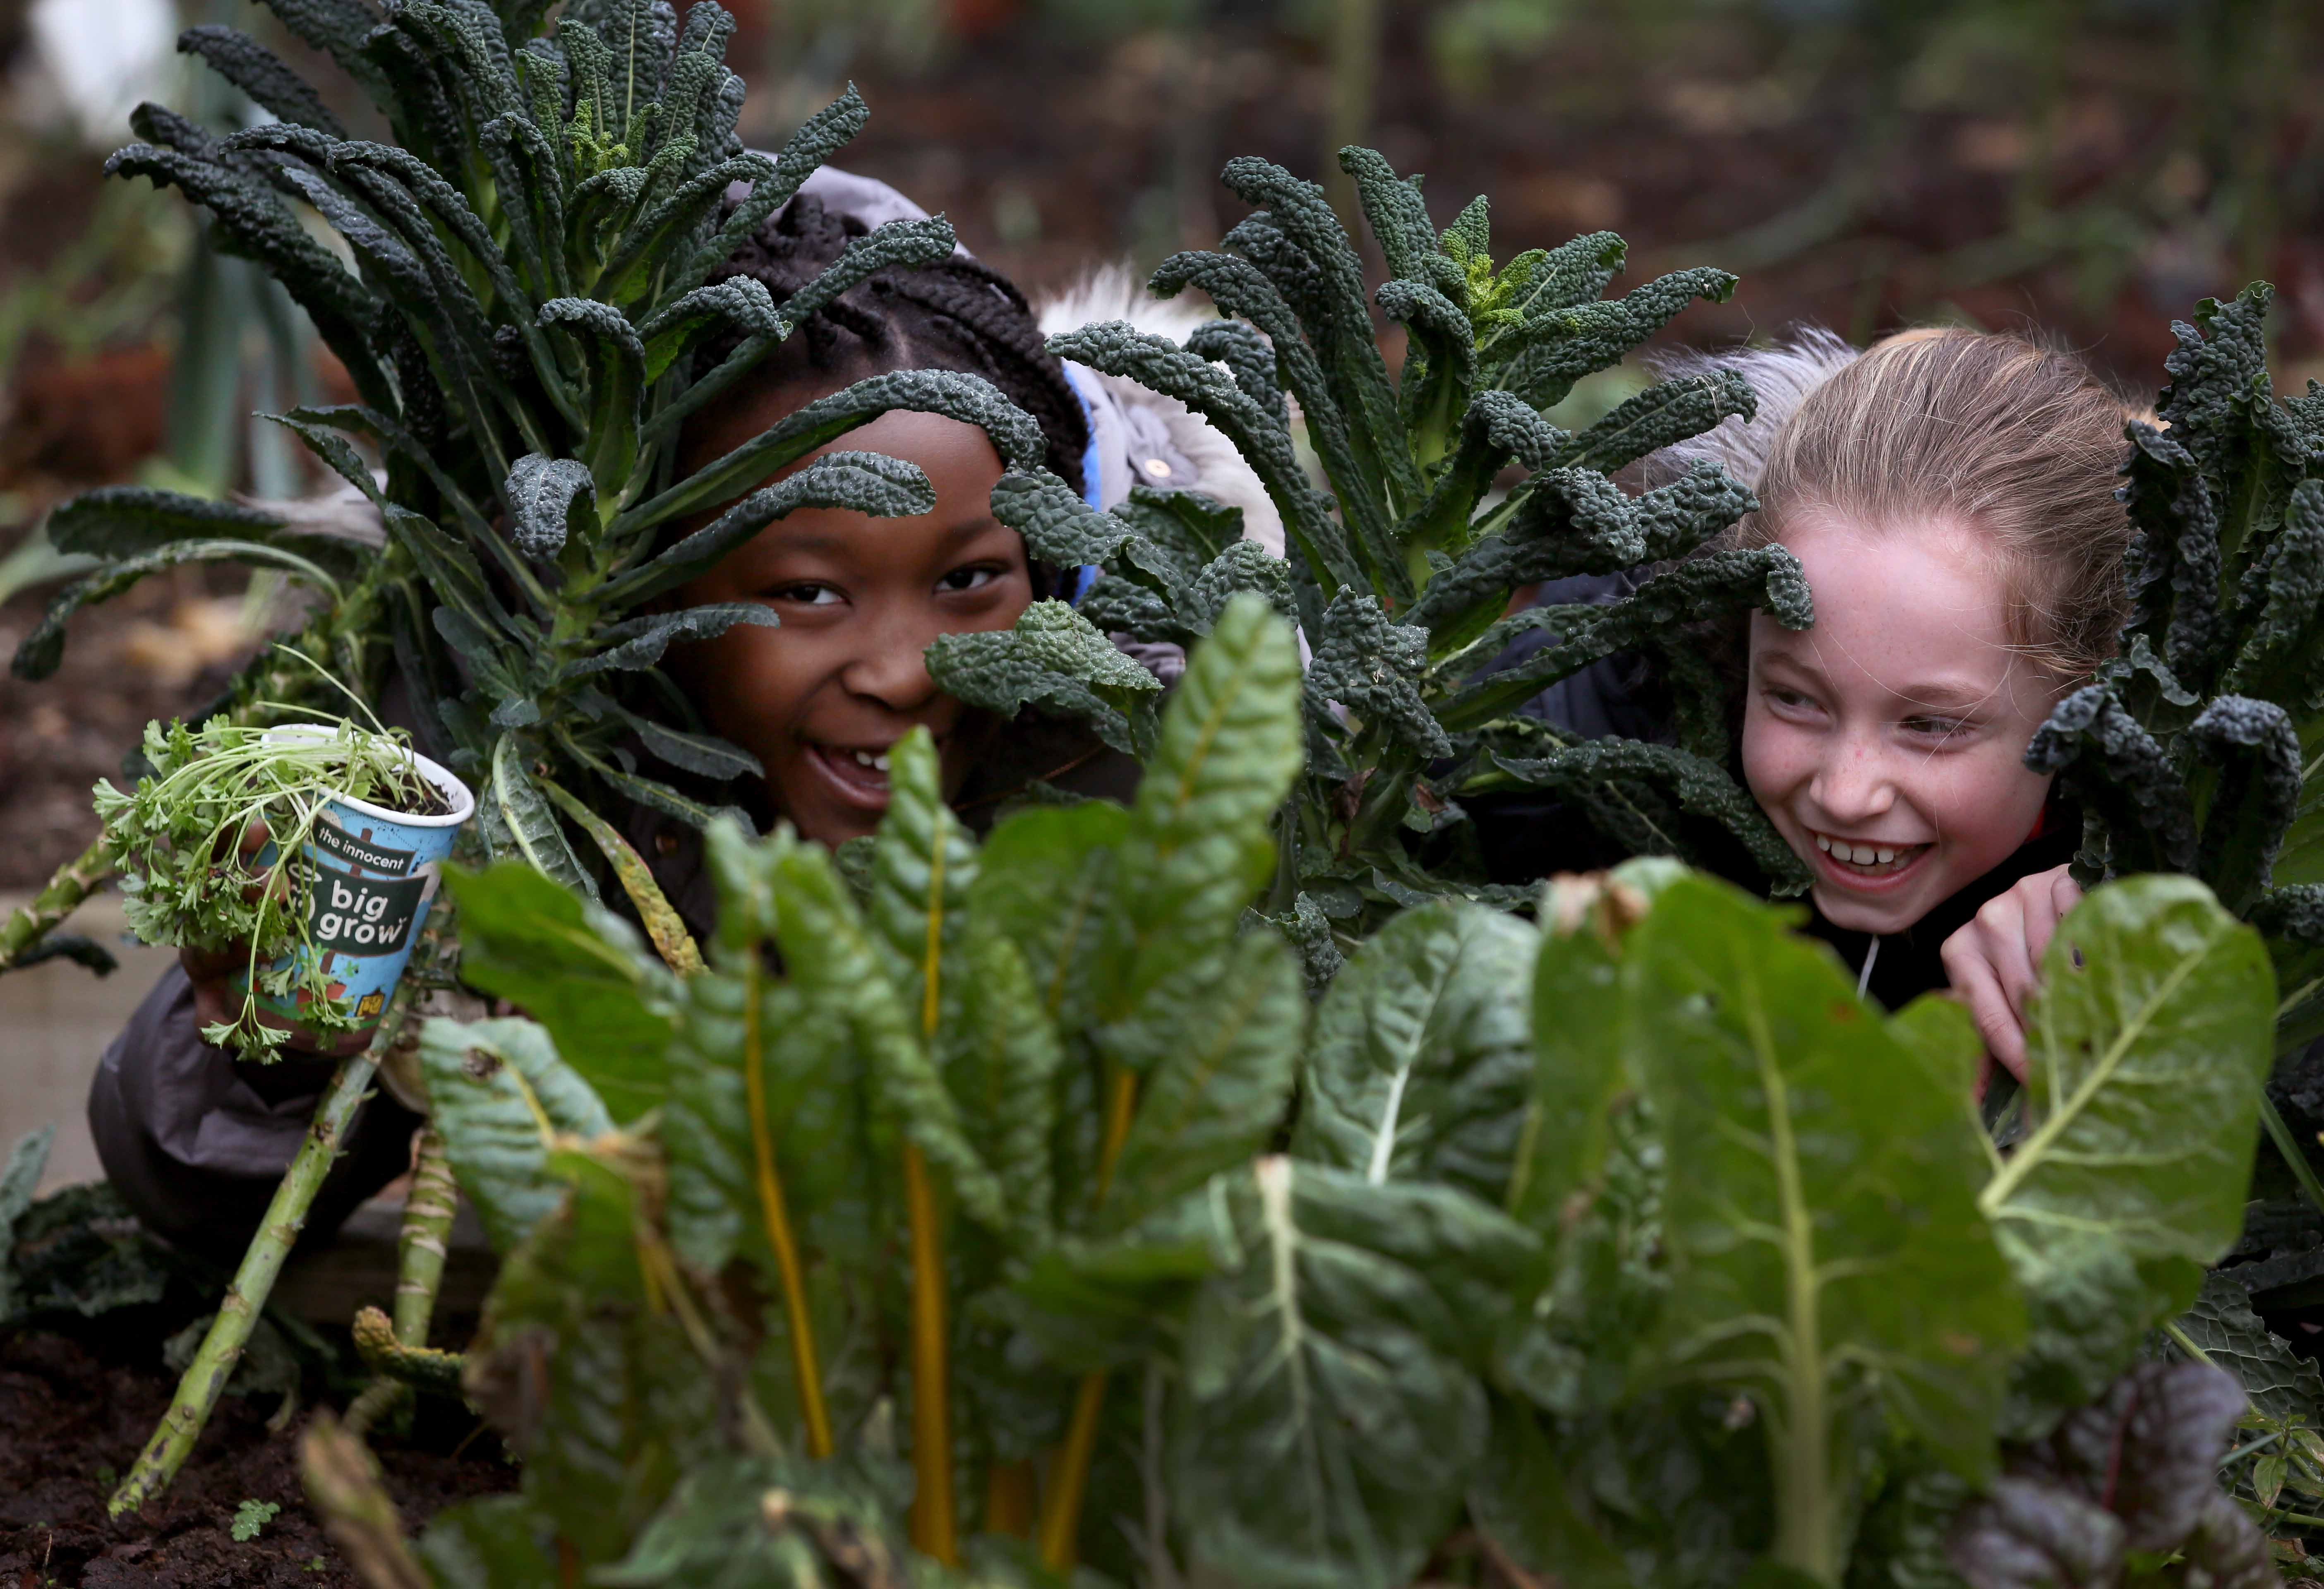 Jessica Chinamasa (9), left, and Hannah Bryce-Smith (9), little growers from St. Brigid's Garden Club in Stillorgan Co. Dublin who joined the growvolution with the innocent and GIY Big Grow earlier this year. Photo by Mark Stedman.